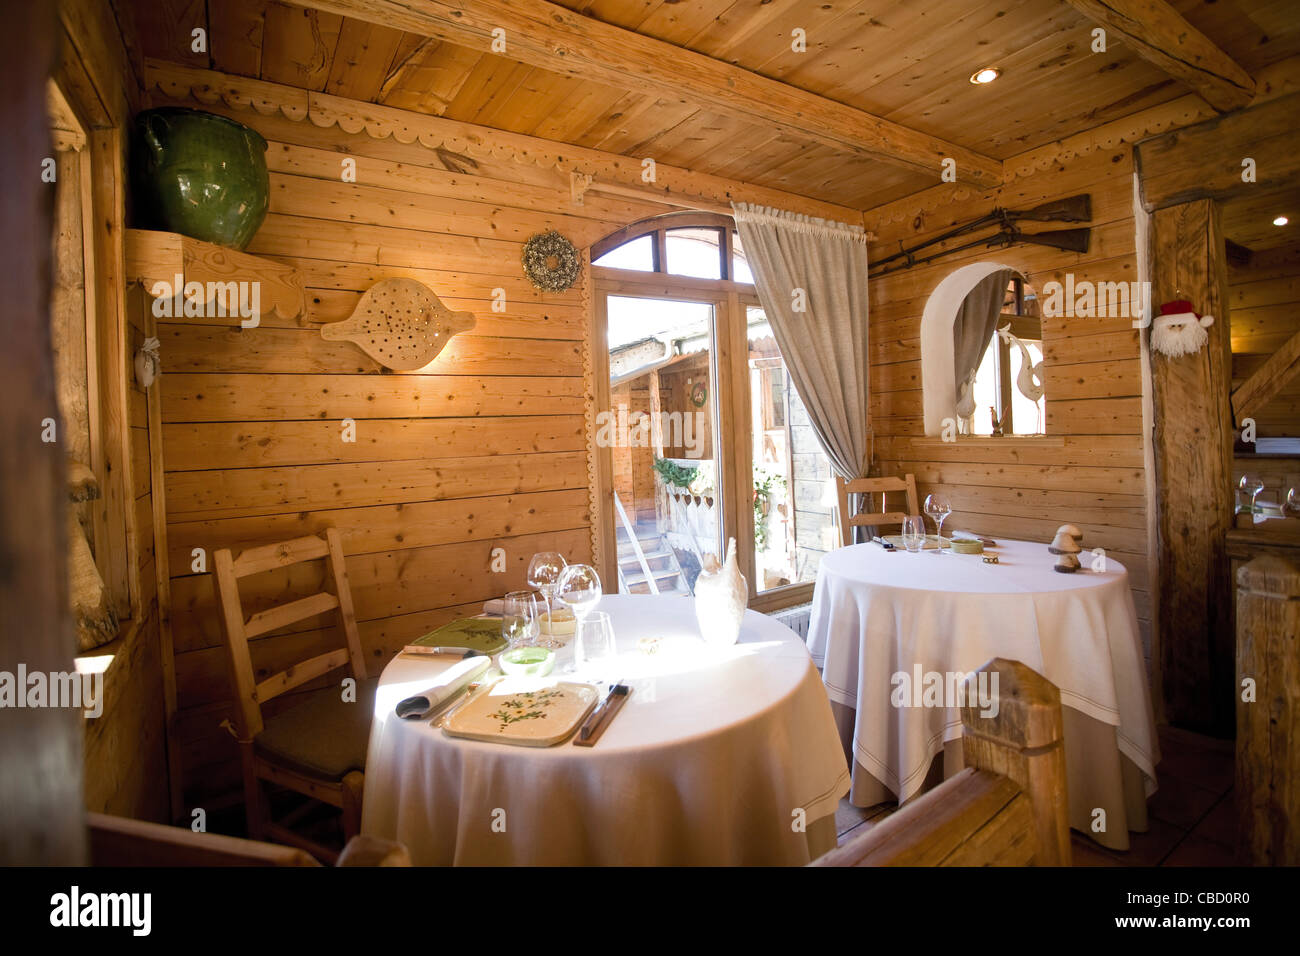 Dining Room Restaurant Rustic Stockfotos & Dining Room Restaurant ...